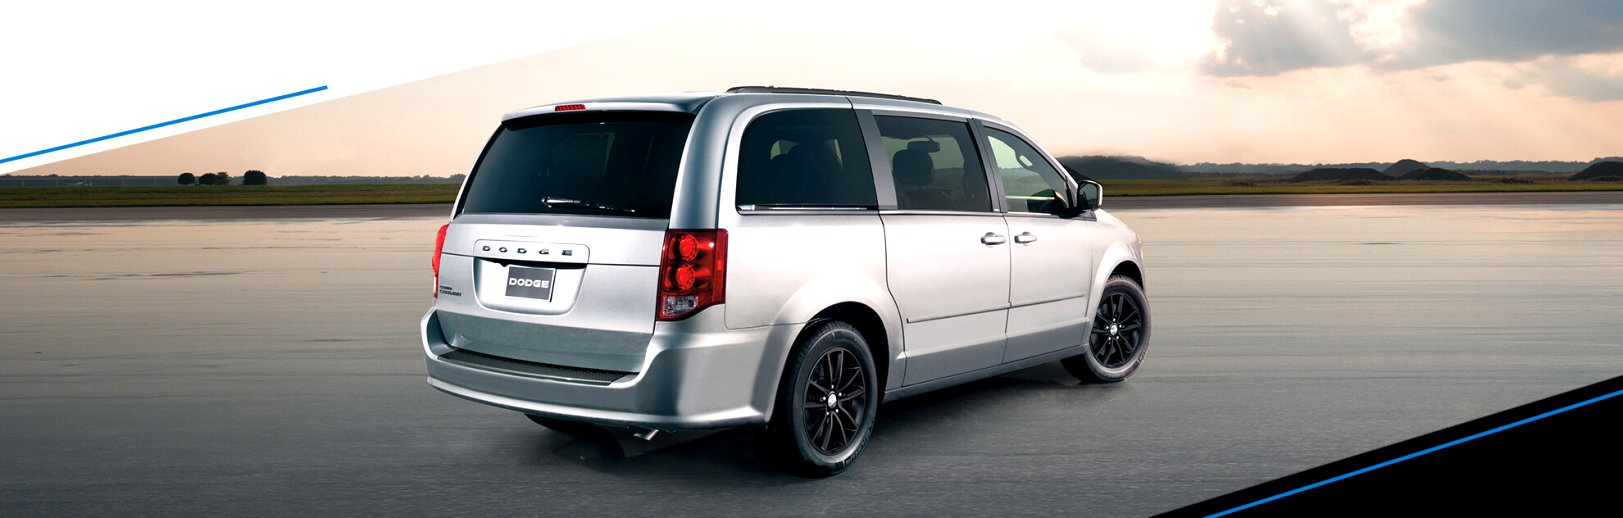 dodge caravan 2020 Price, Design and Review